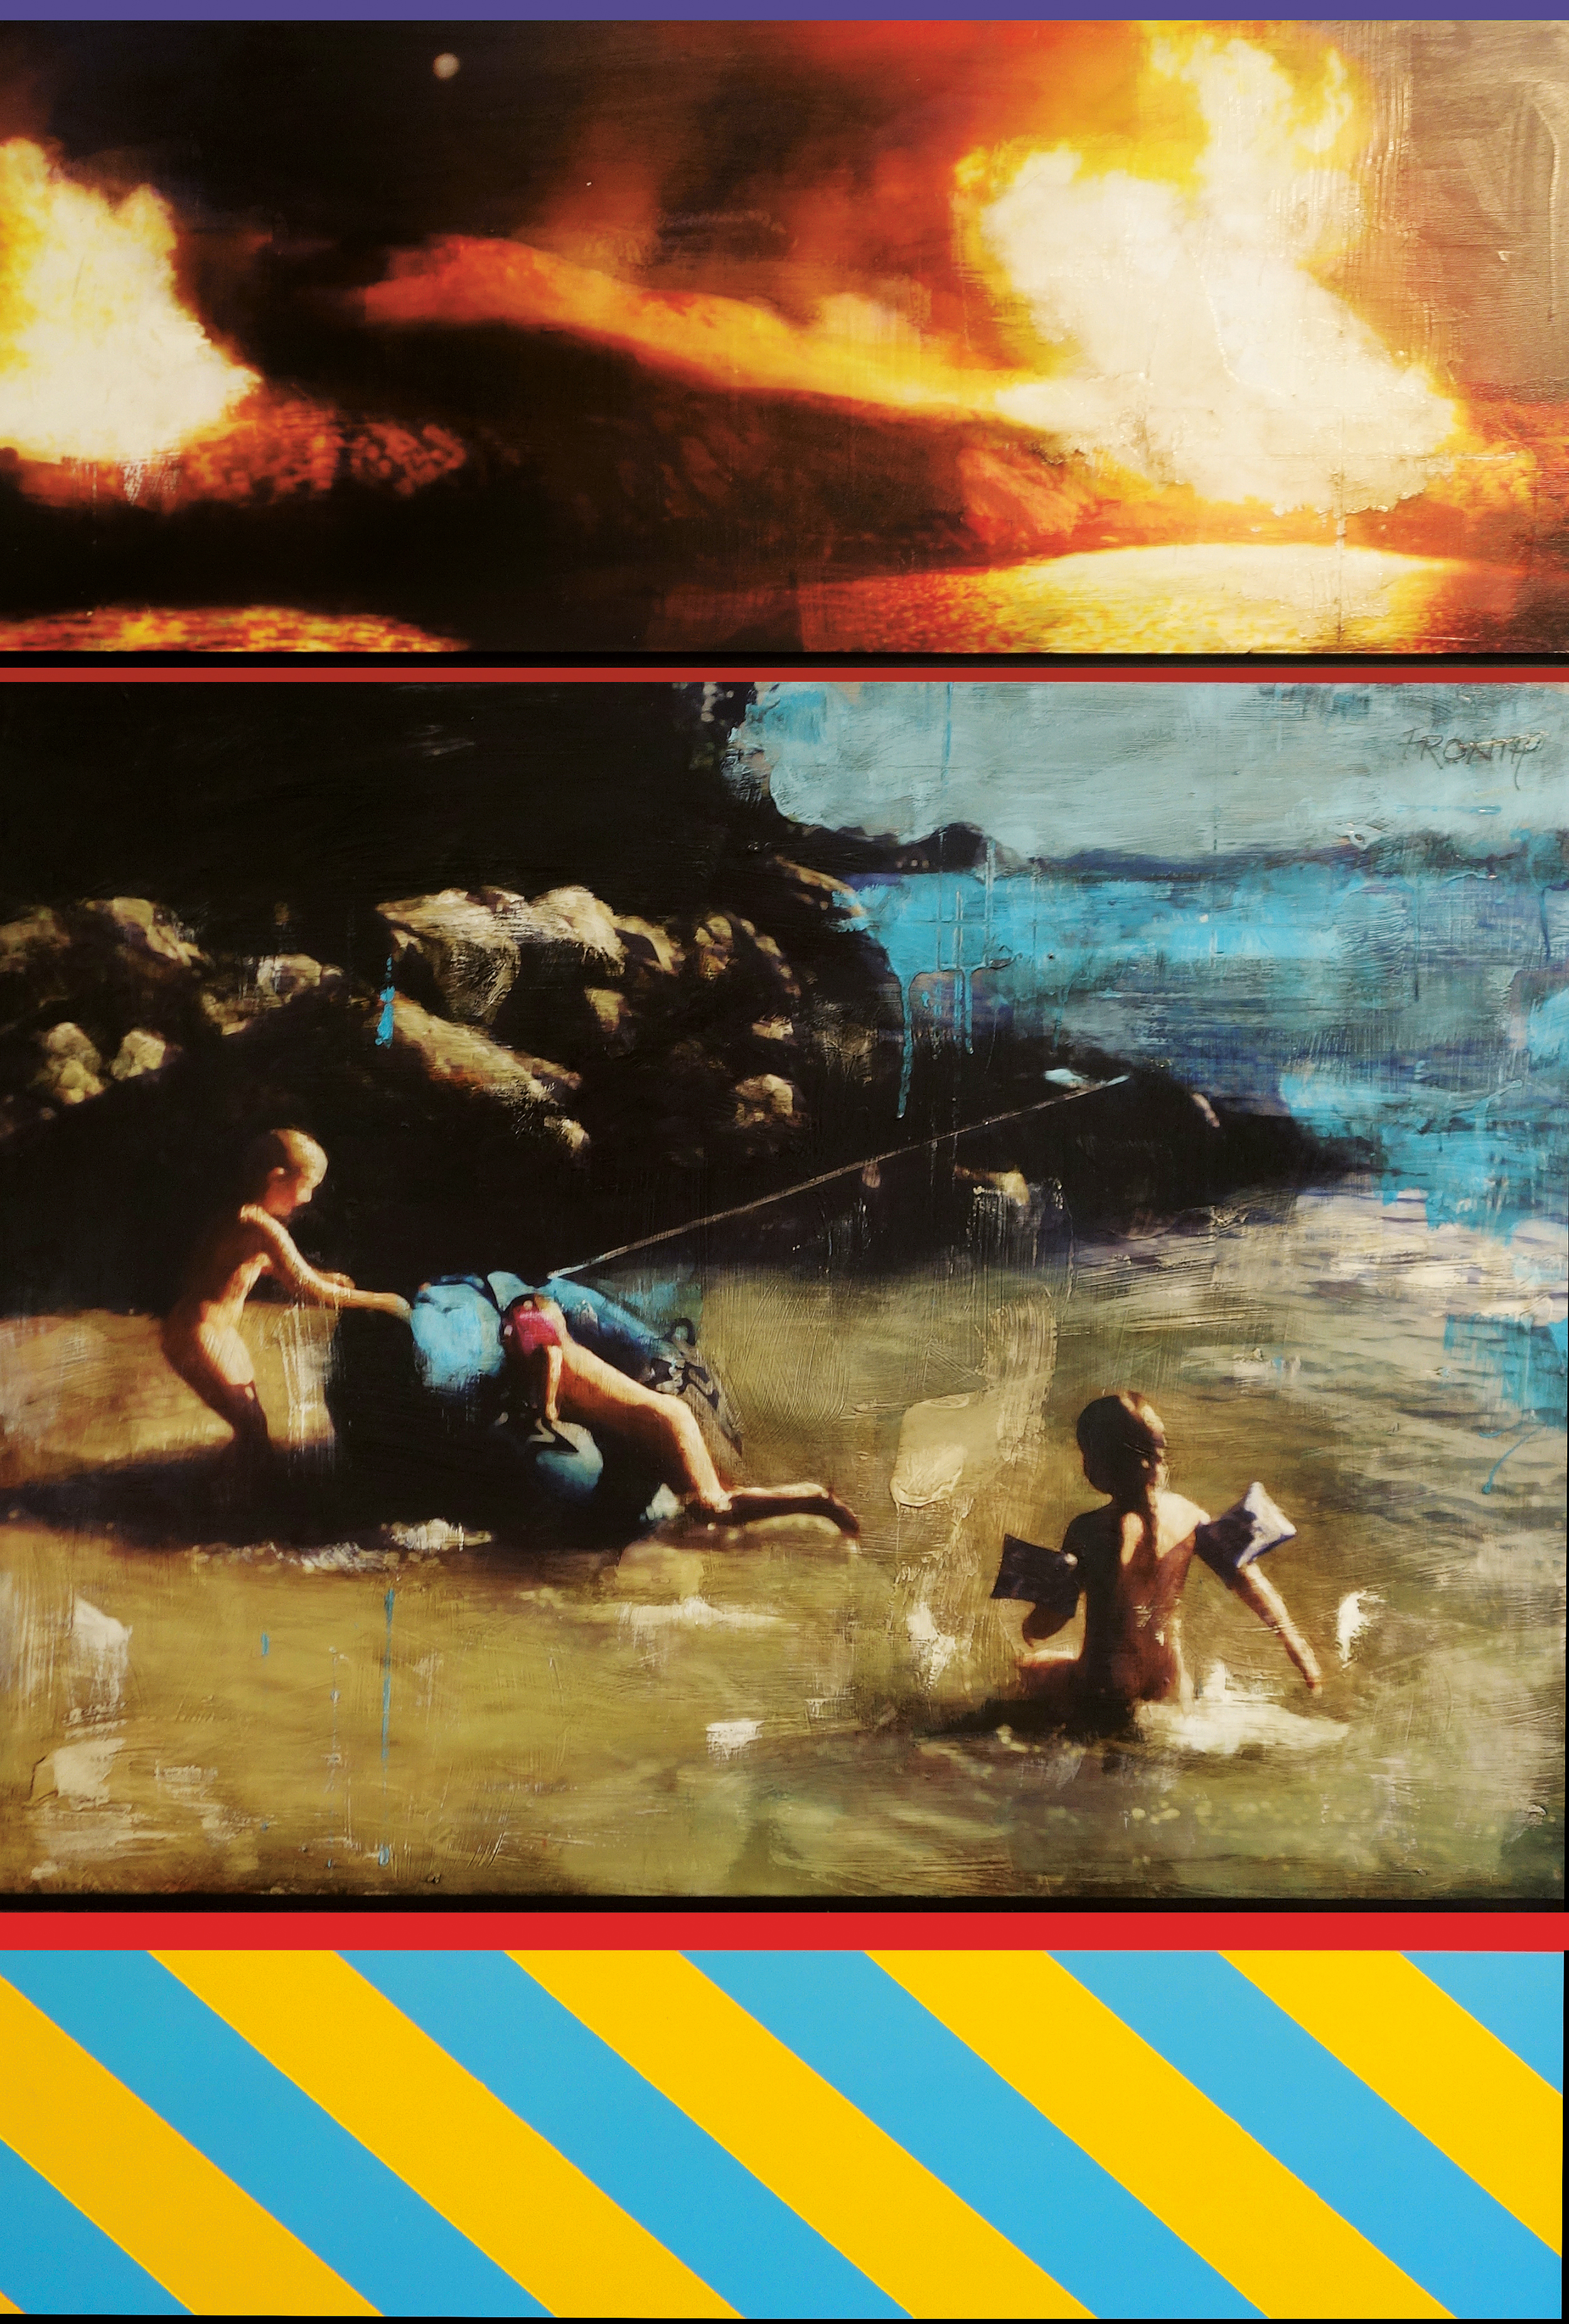 Ritual / First Day of Summer / Blue Inflatable  Mixed Media / Oil on MDF / Trip-tych 100 x 147 cm / 39 x 57 in Private Collection / Swtzerland 2014